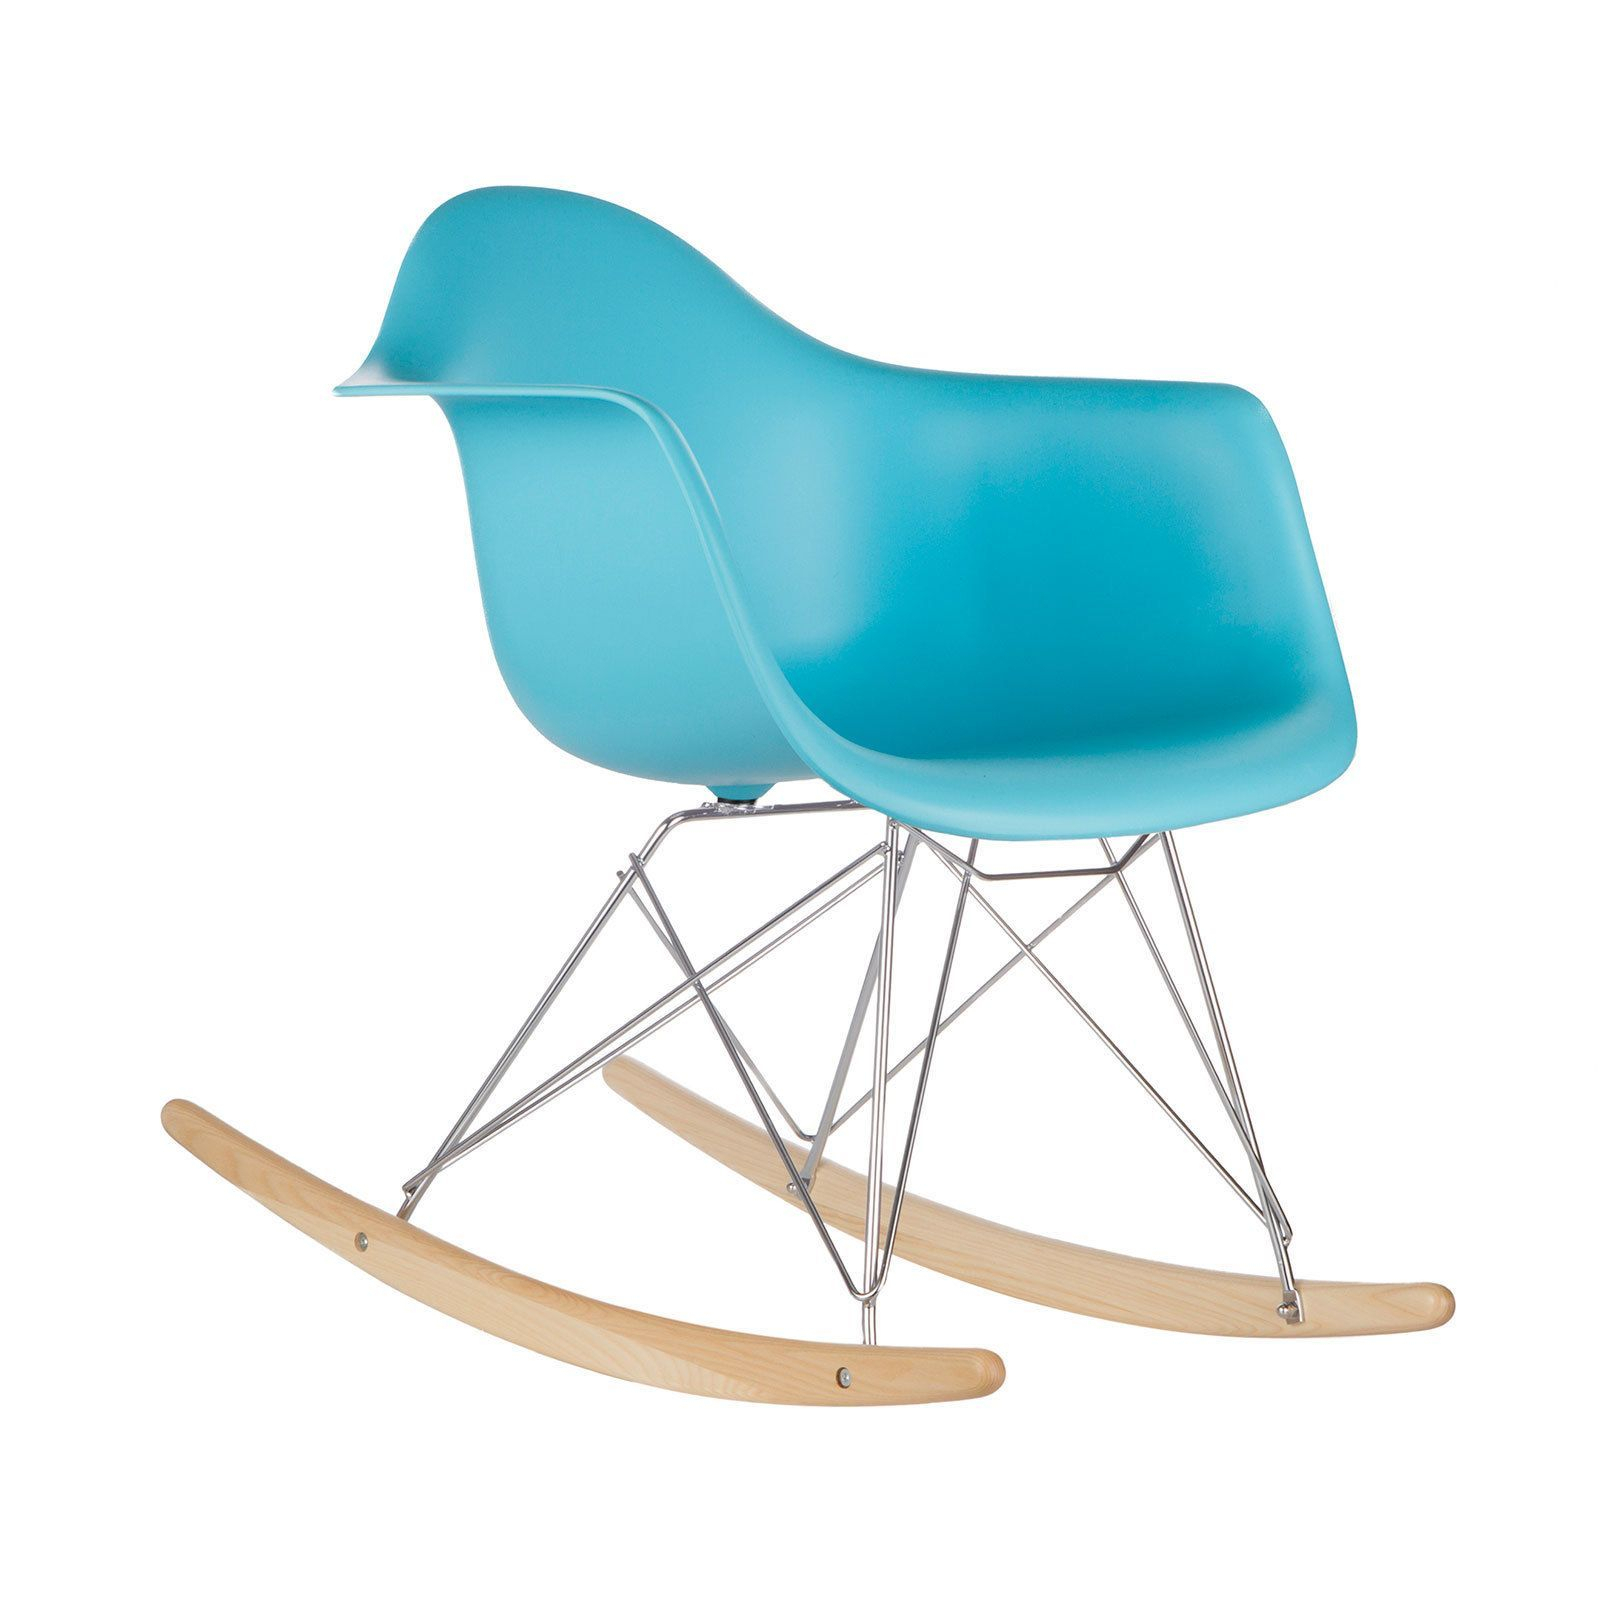 Light Society Edgemod Blue Rocker Lounge Chair (Blue) (Metal Regarding Poly And Bark Teal Rocking Chairs Lounge Chairs (View 4 of 20)